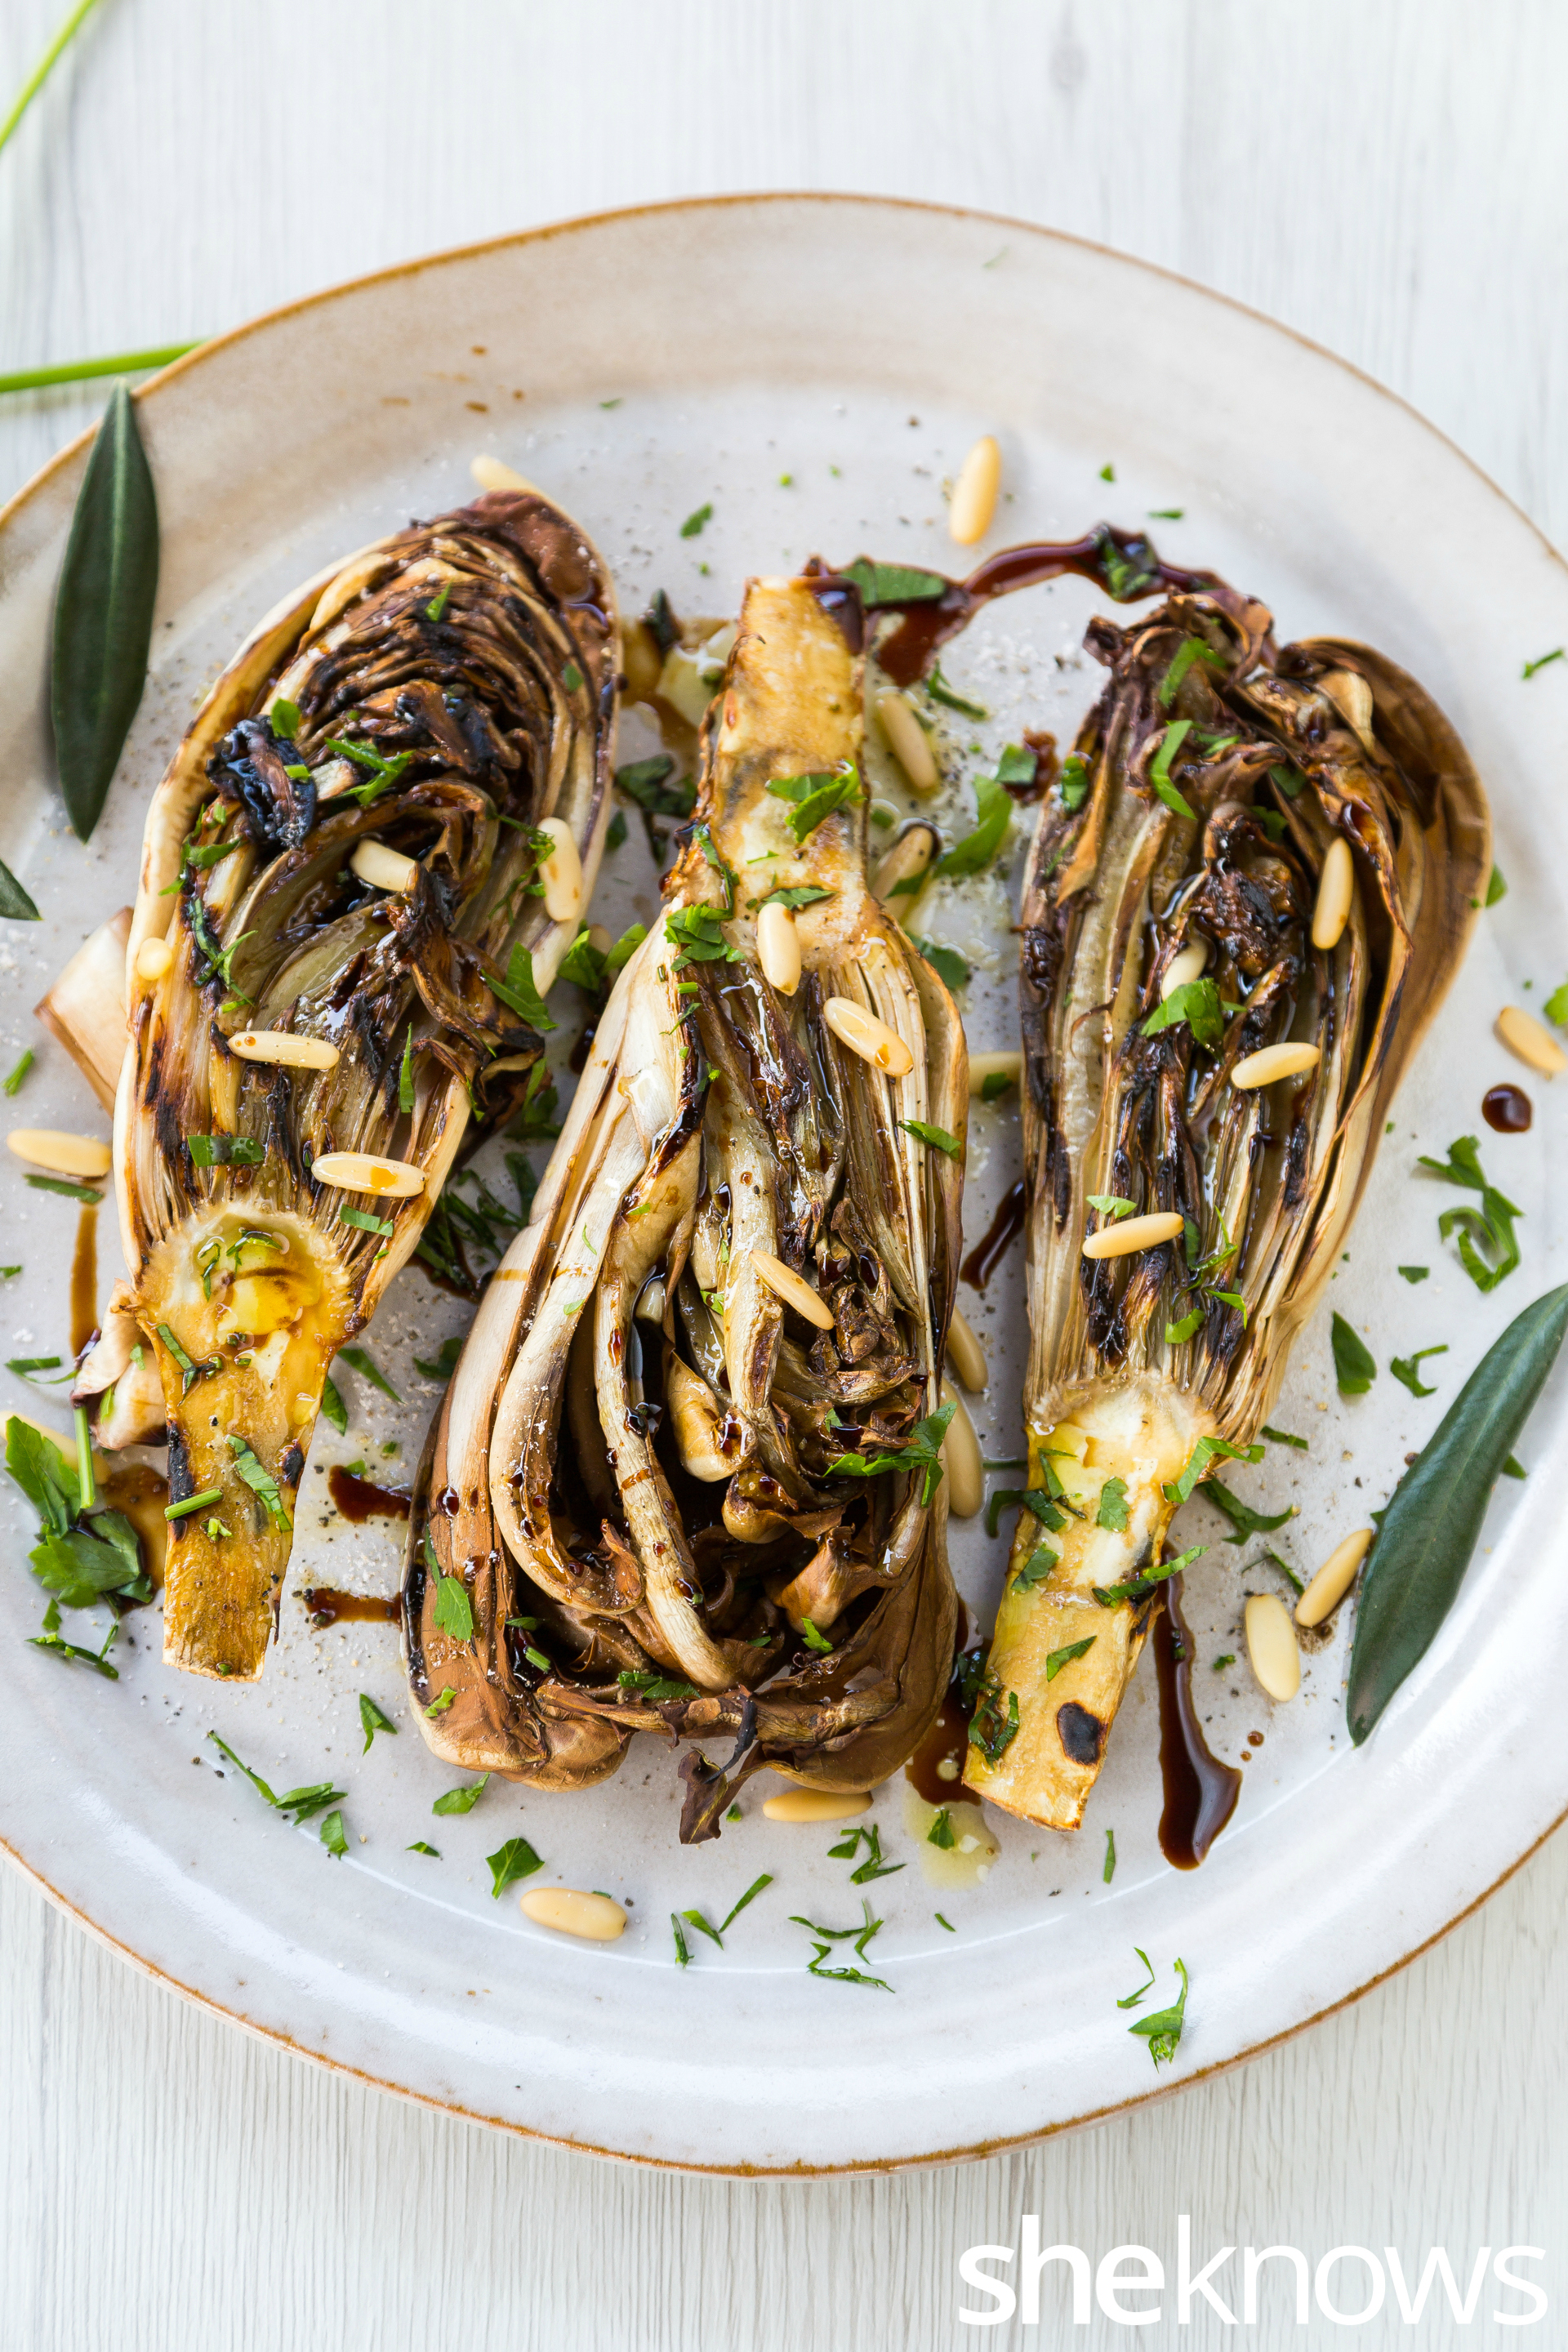 Grilled-radicchio-with-balsamic-vinegar-and-pine-nuts